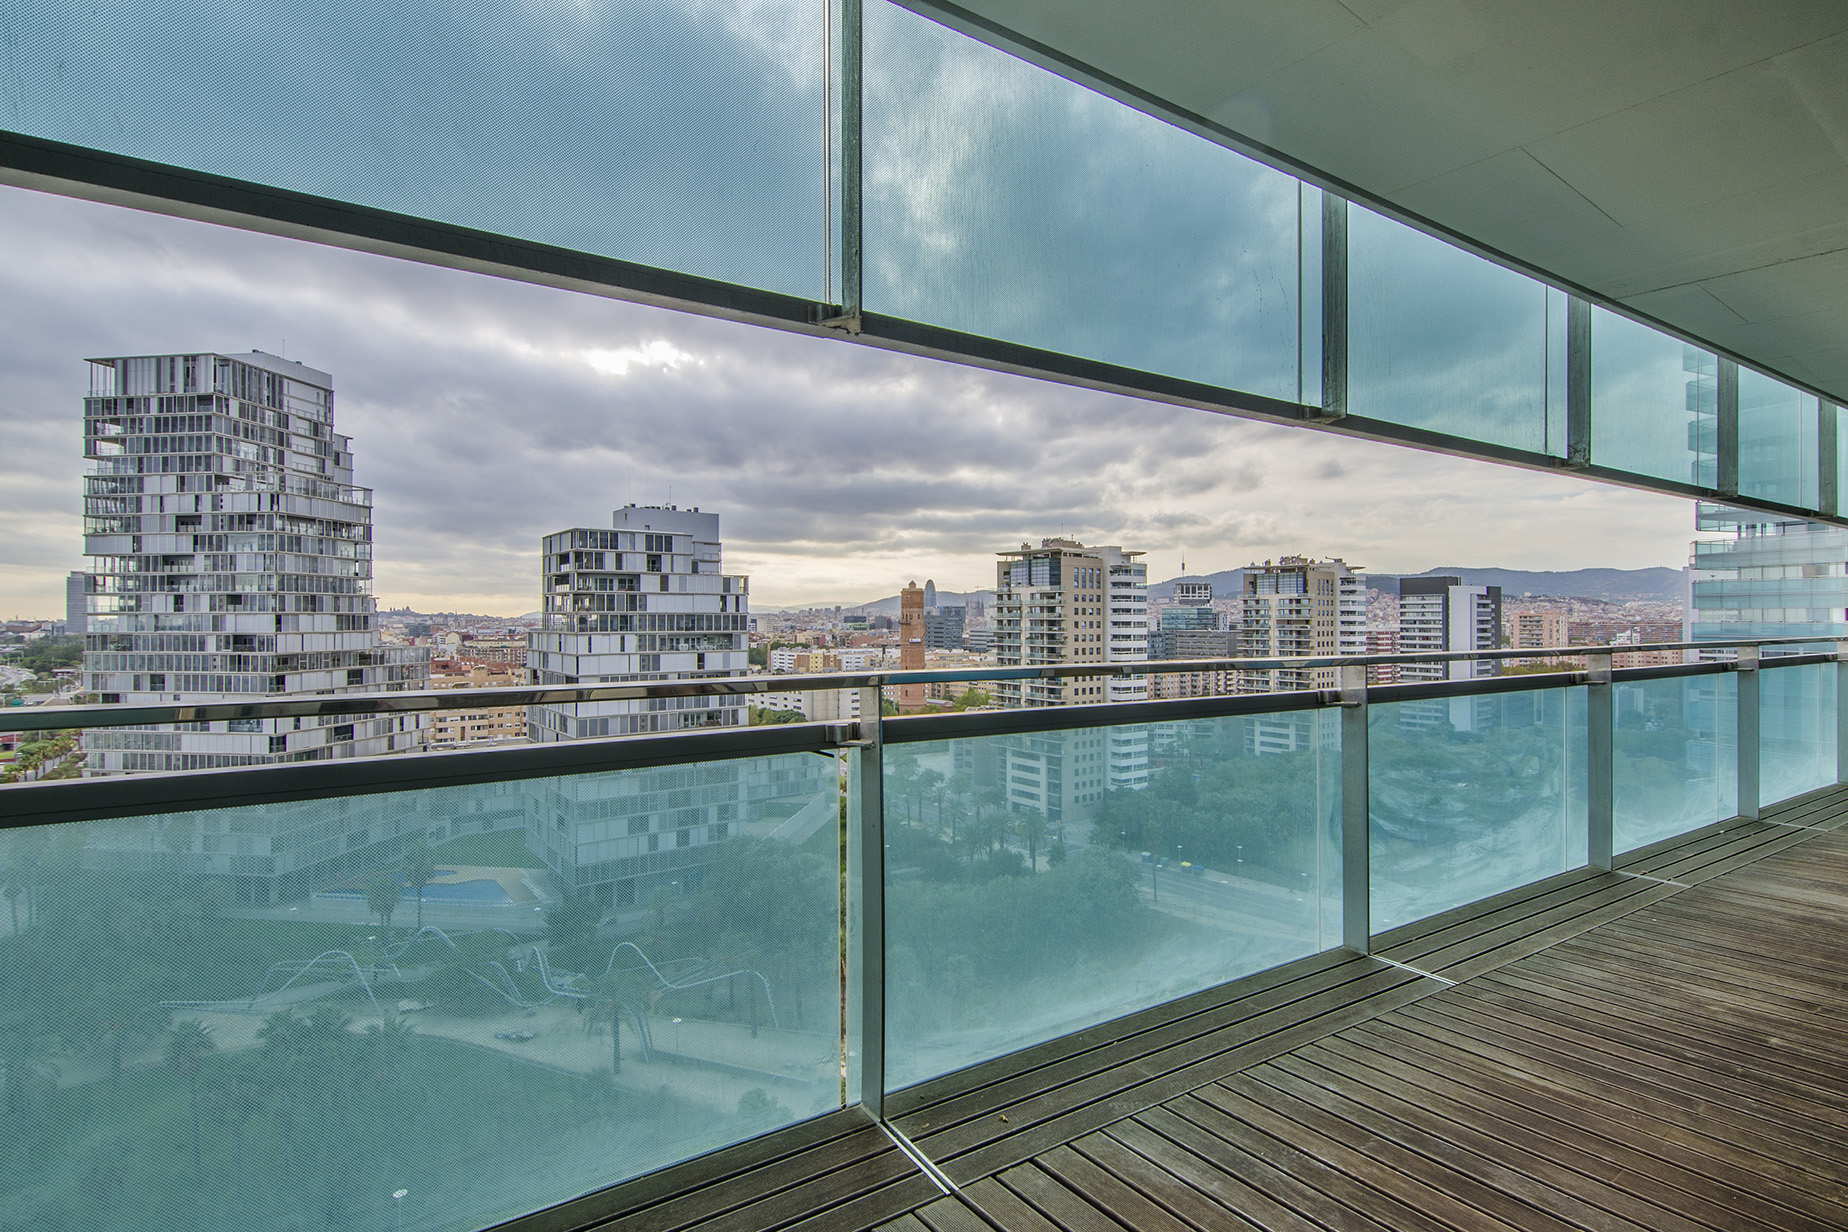 Apartment for Sale at Magnificent Apartment with Spectacular Views in Diagonal Mar, Barcelona Barcelona City, Barcelona, 08019 Spain